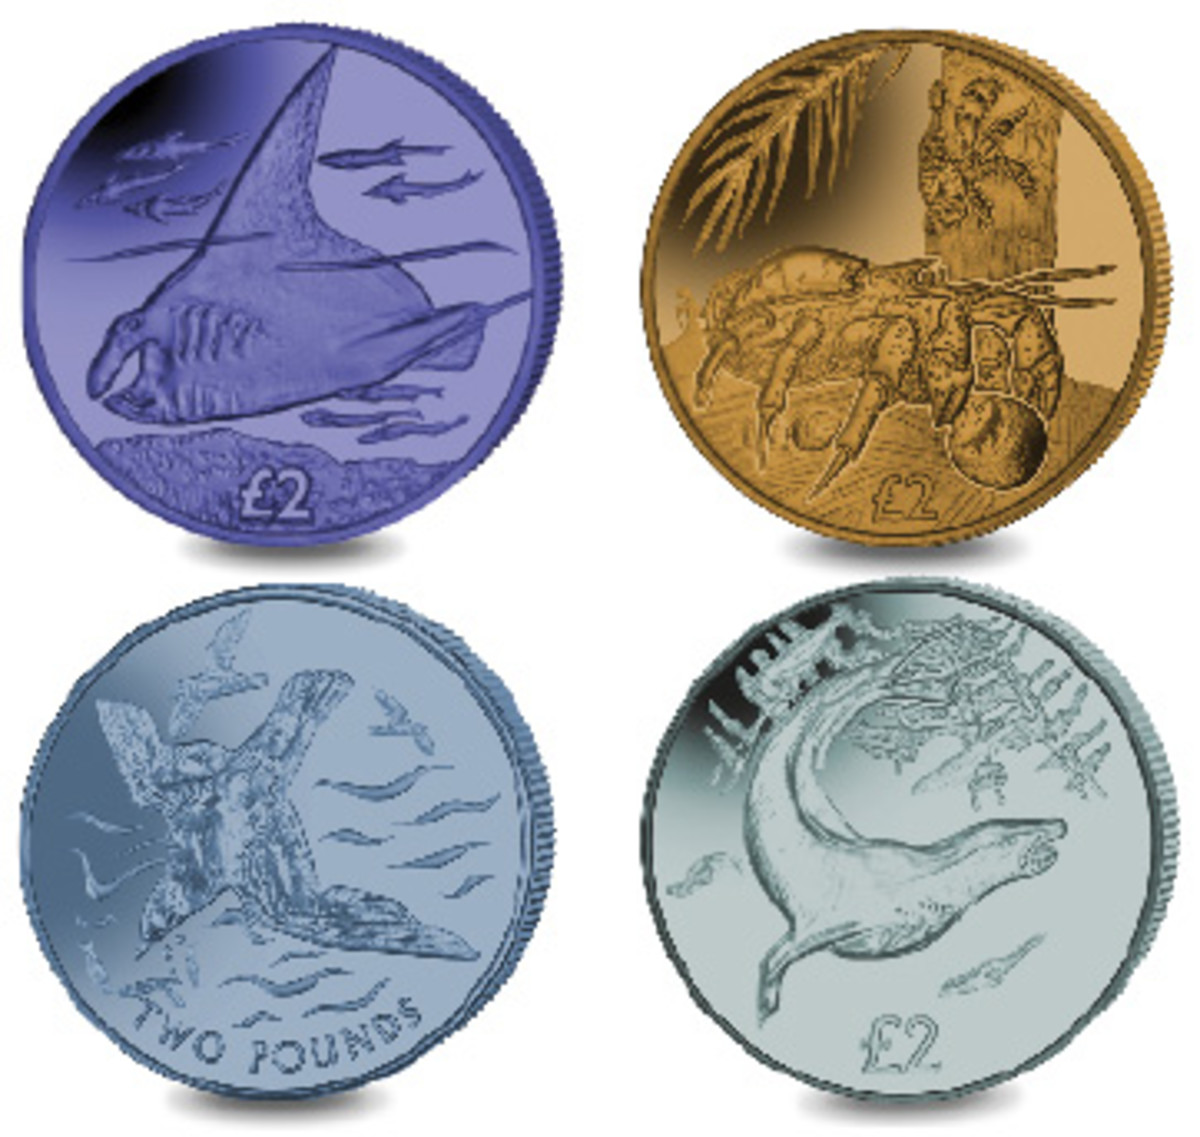 Reverses of Pobjoy Mint's latest £2 titanium coins. Top from left: Manta Ray and Coconut Crab (BIOT). Bottom from left: Blue Petrel (BAT) and Leopard Seal (South Georgia and the South Sandwich Islands). (Images courtesy Pobjoy Mint)